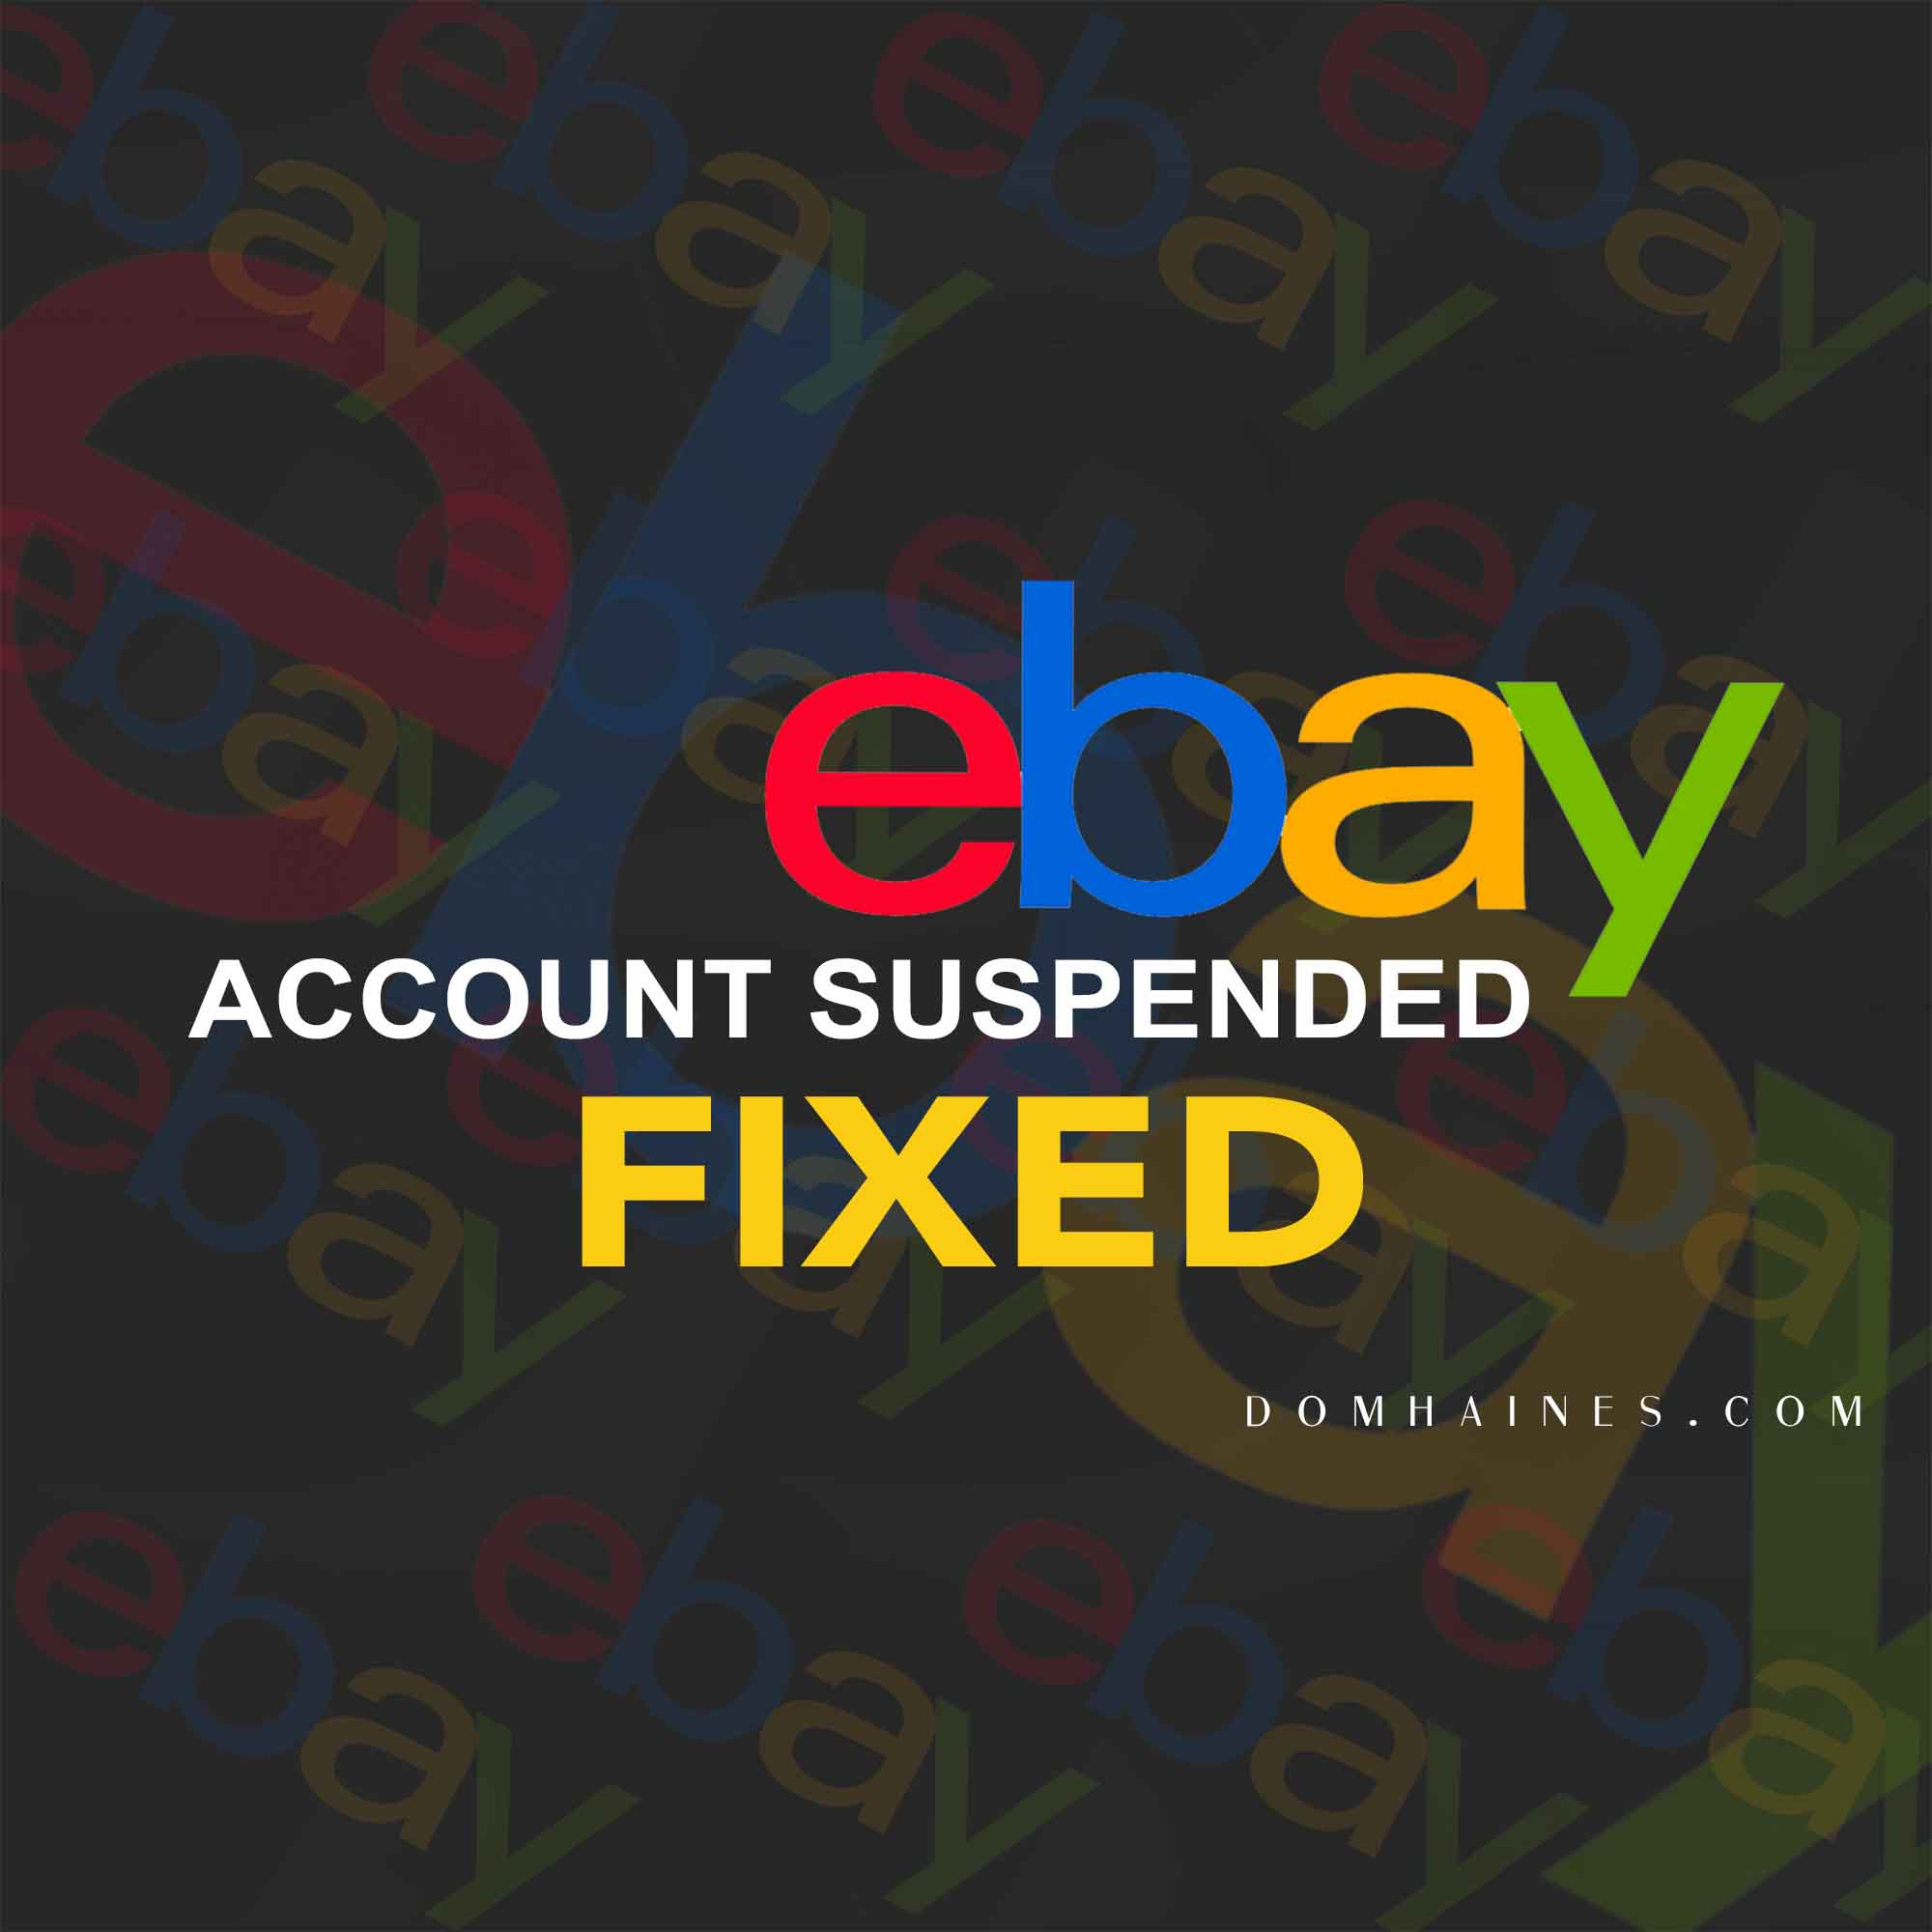 Ebay Suspended My Account Real Solution And Suggestions Dom Haines